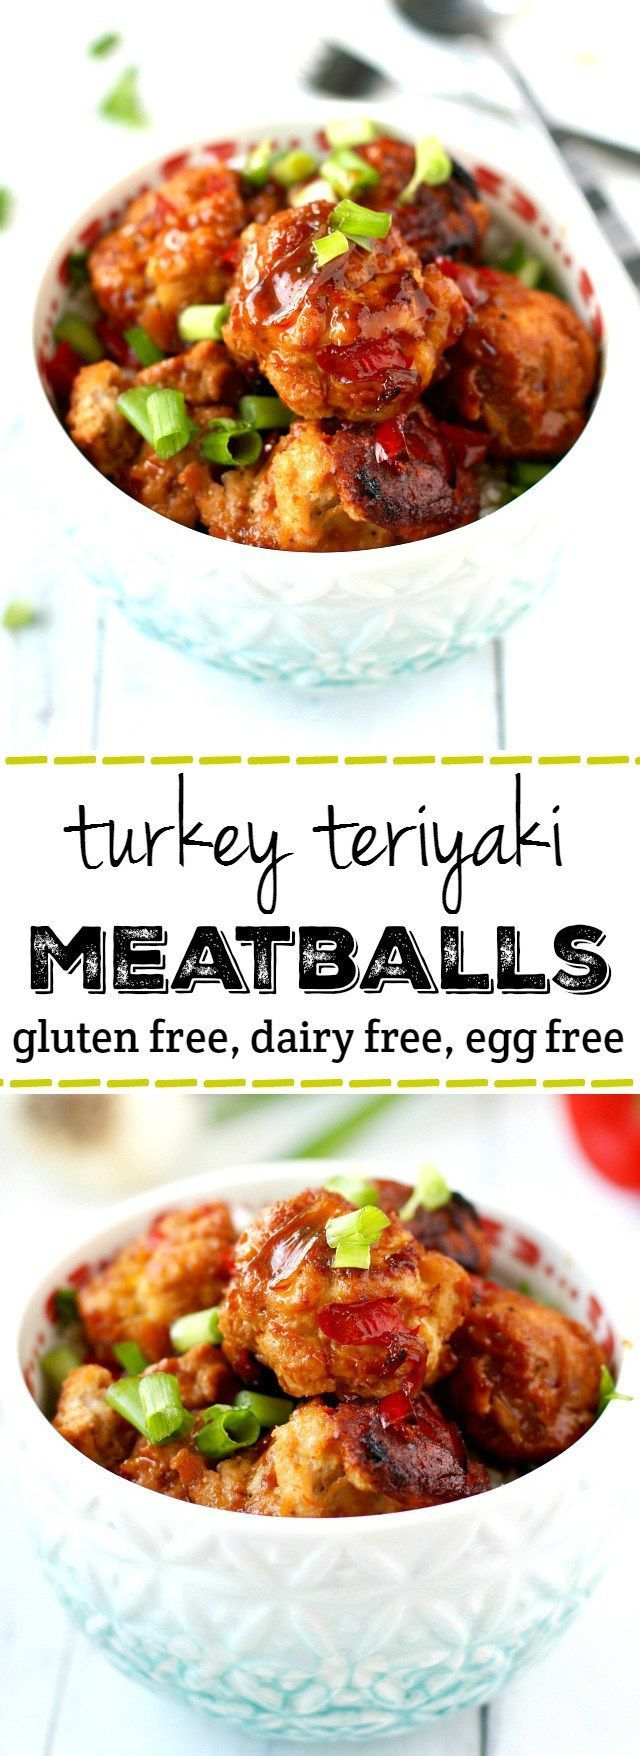 60 best turkey inspiration images on pinterest recipes